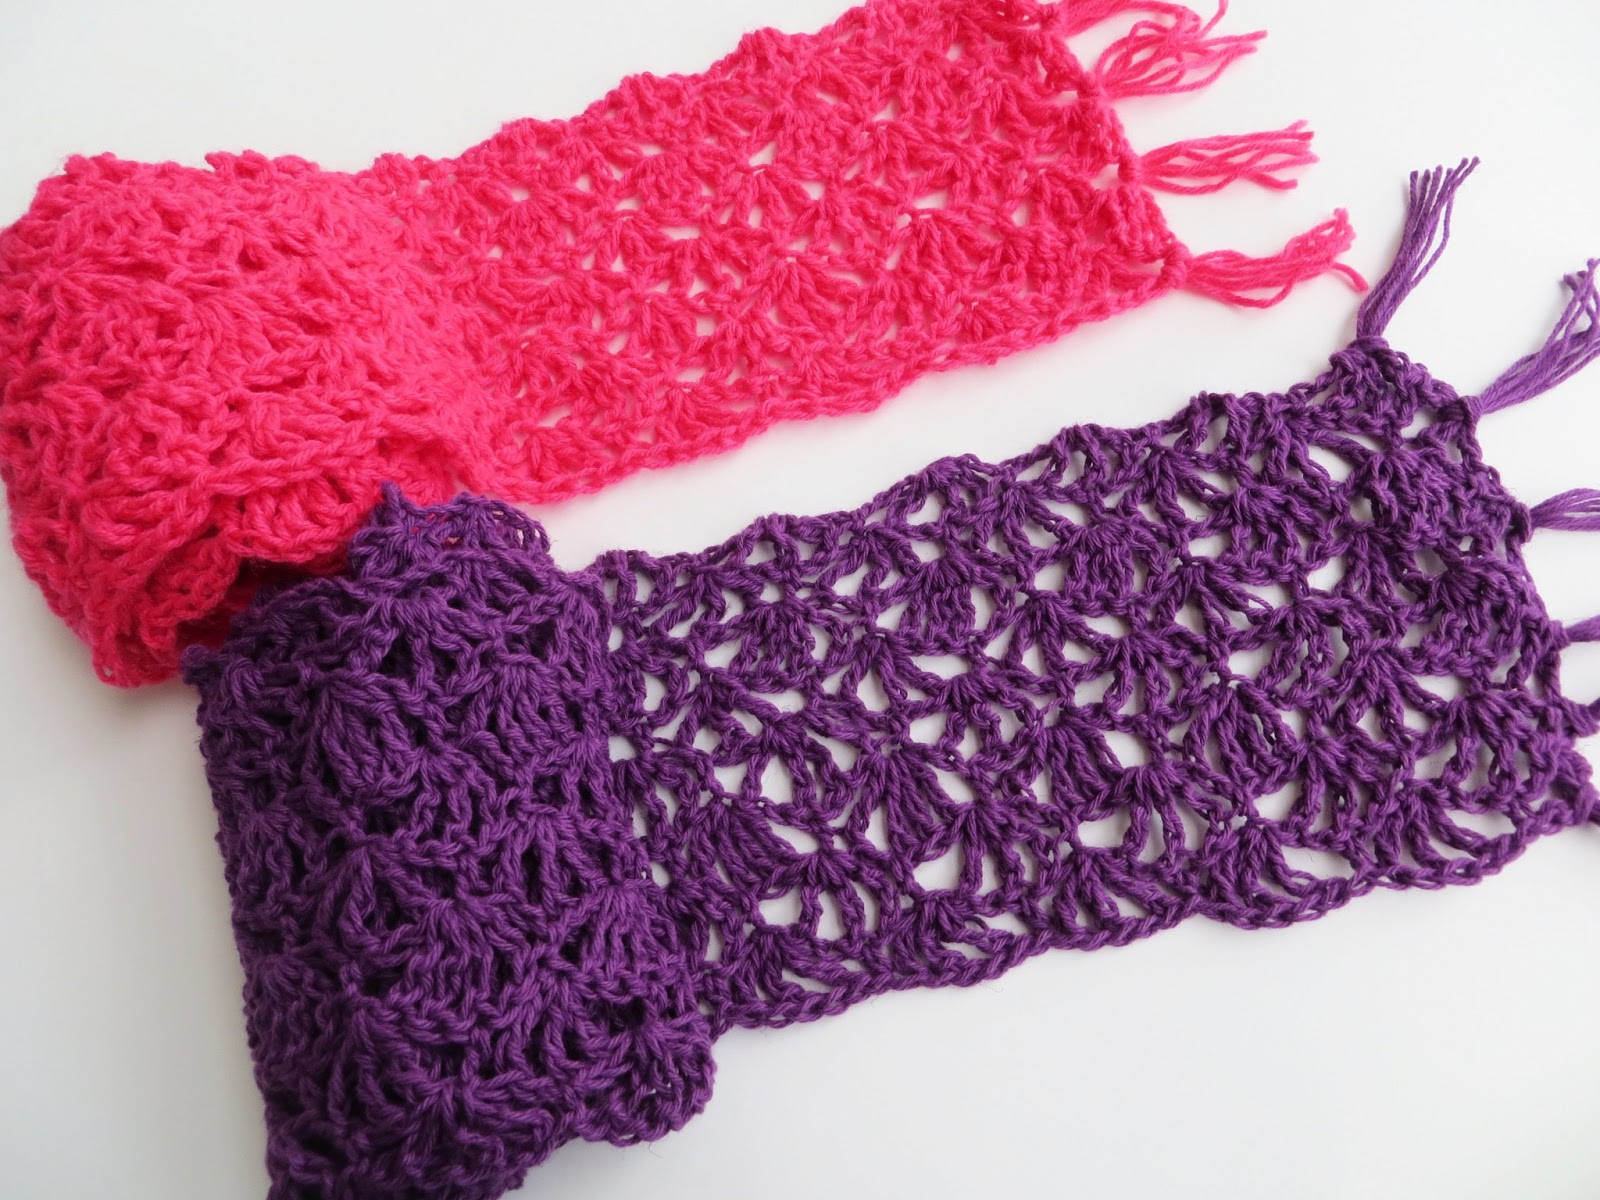 Crochet Me Free Patterns : Crochet Dreamz: Alana Lacy Scarf, Free Crochet Pattern